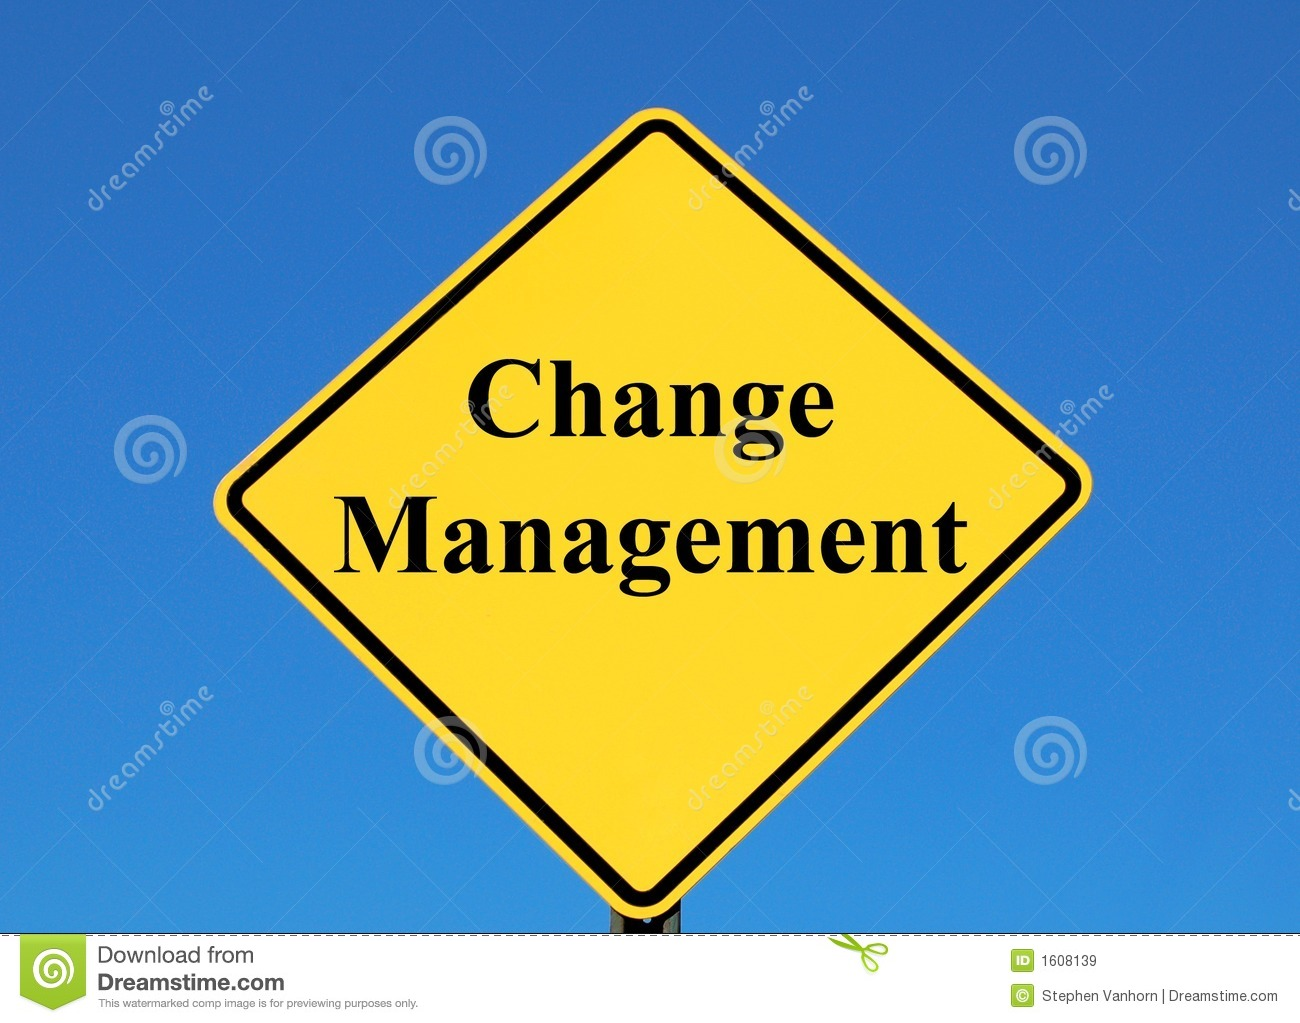 Advantages and Disadvantages of Change Management Methodology